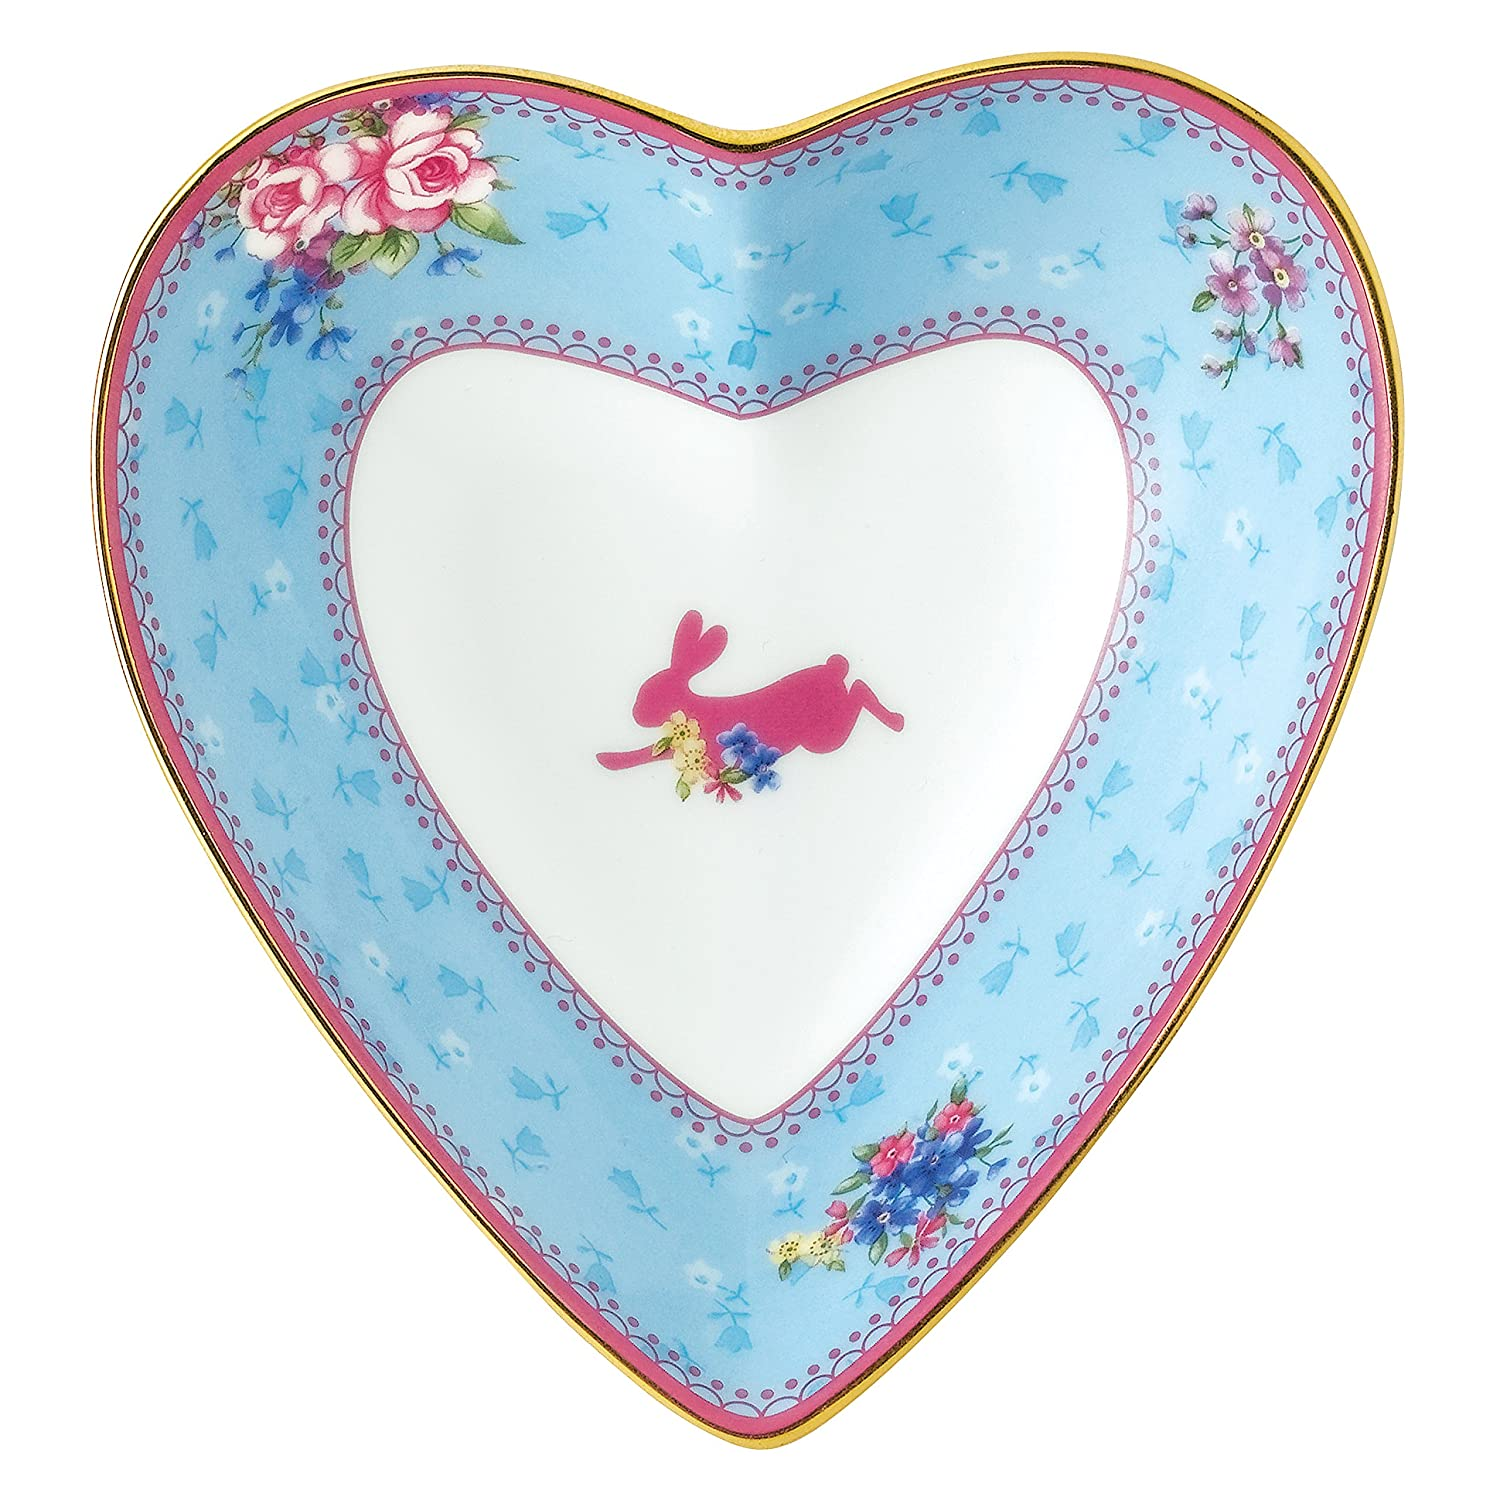 Royal Albert Candy Heart Tray, 5.1